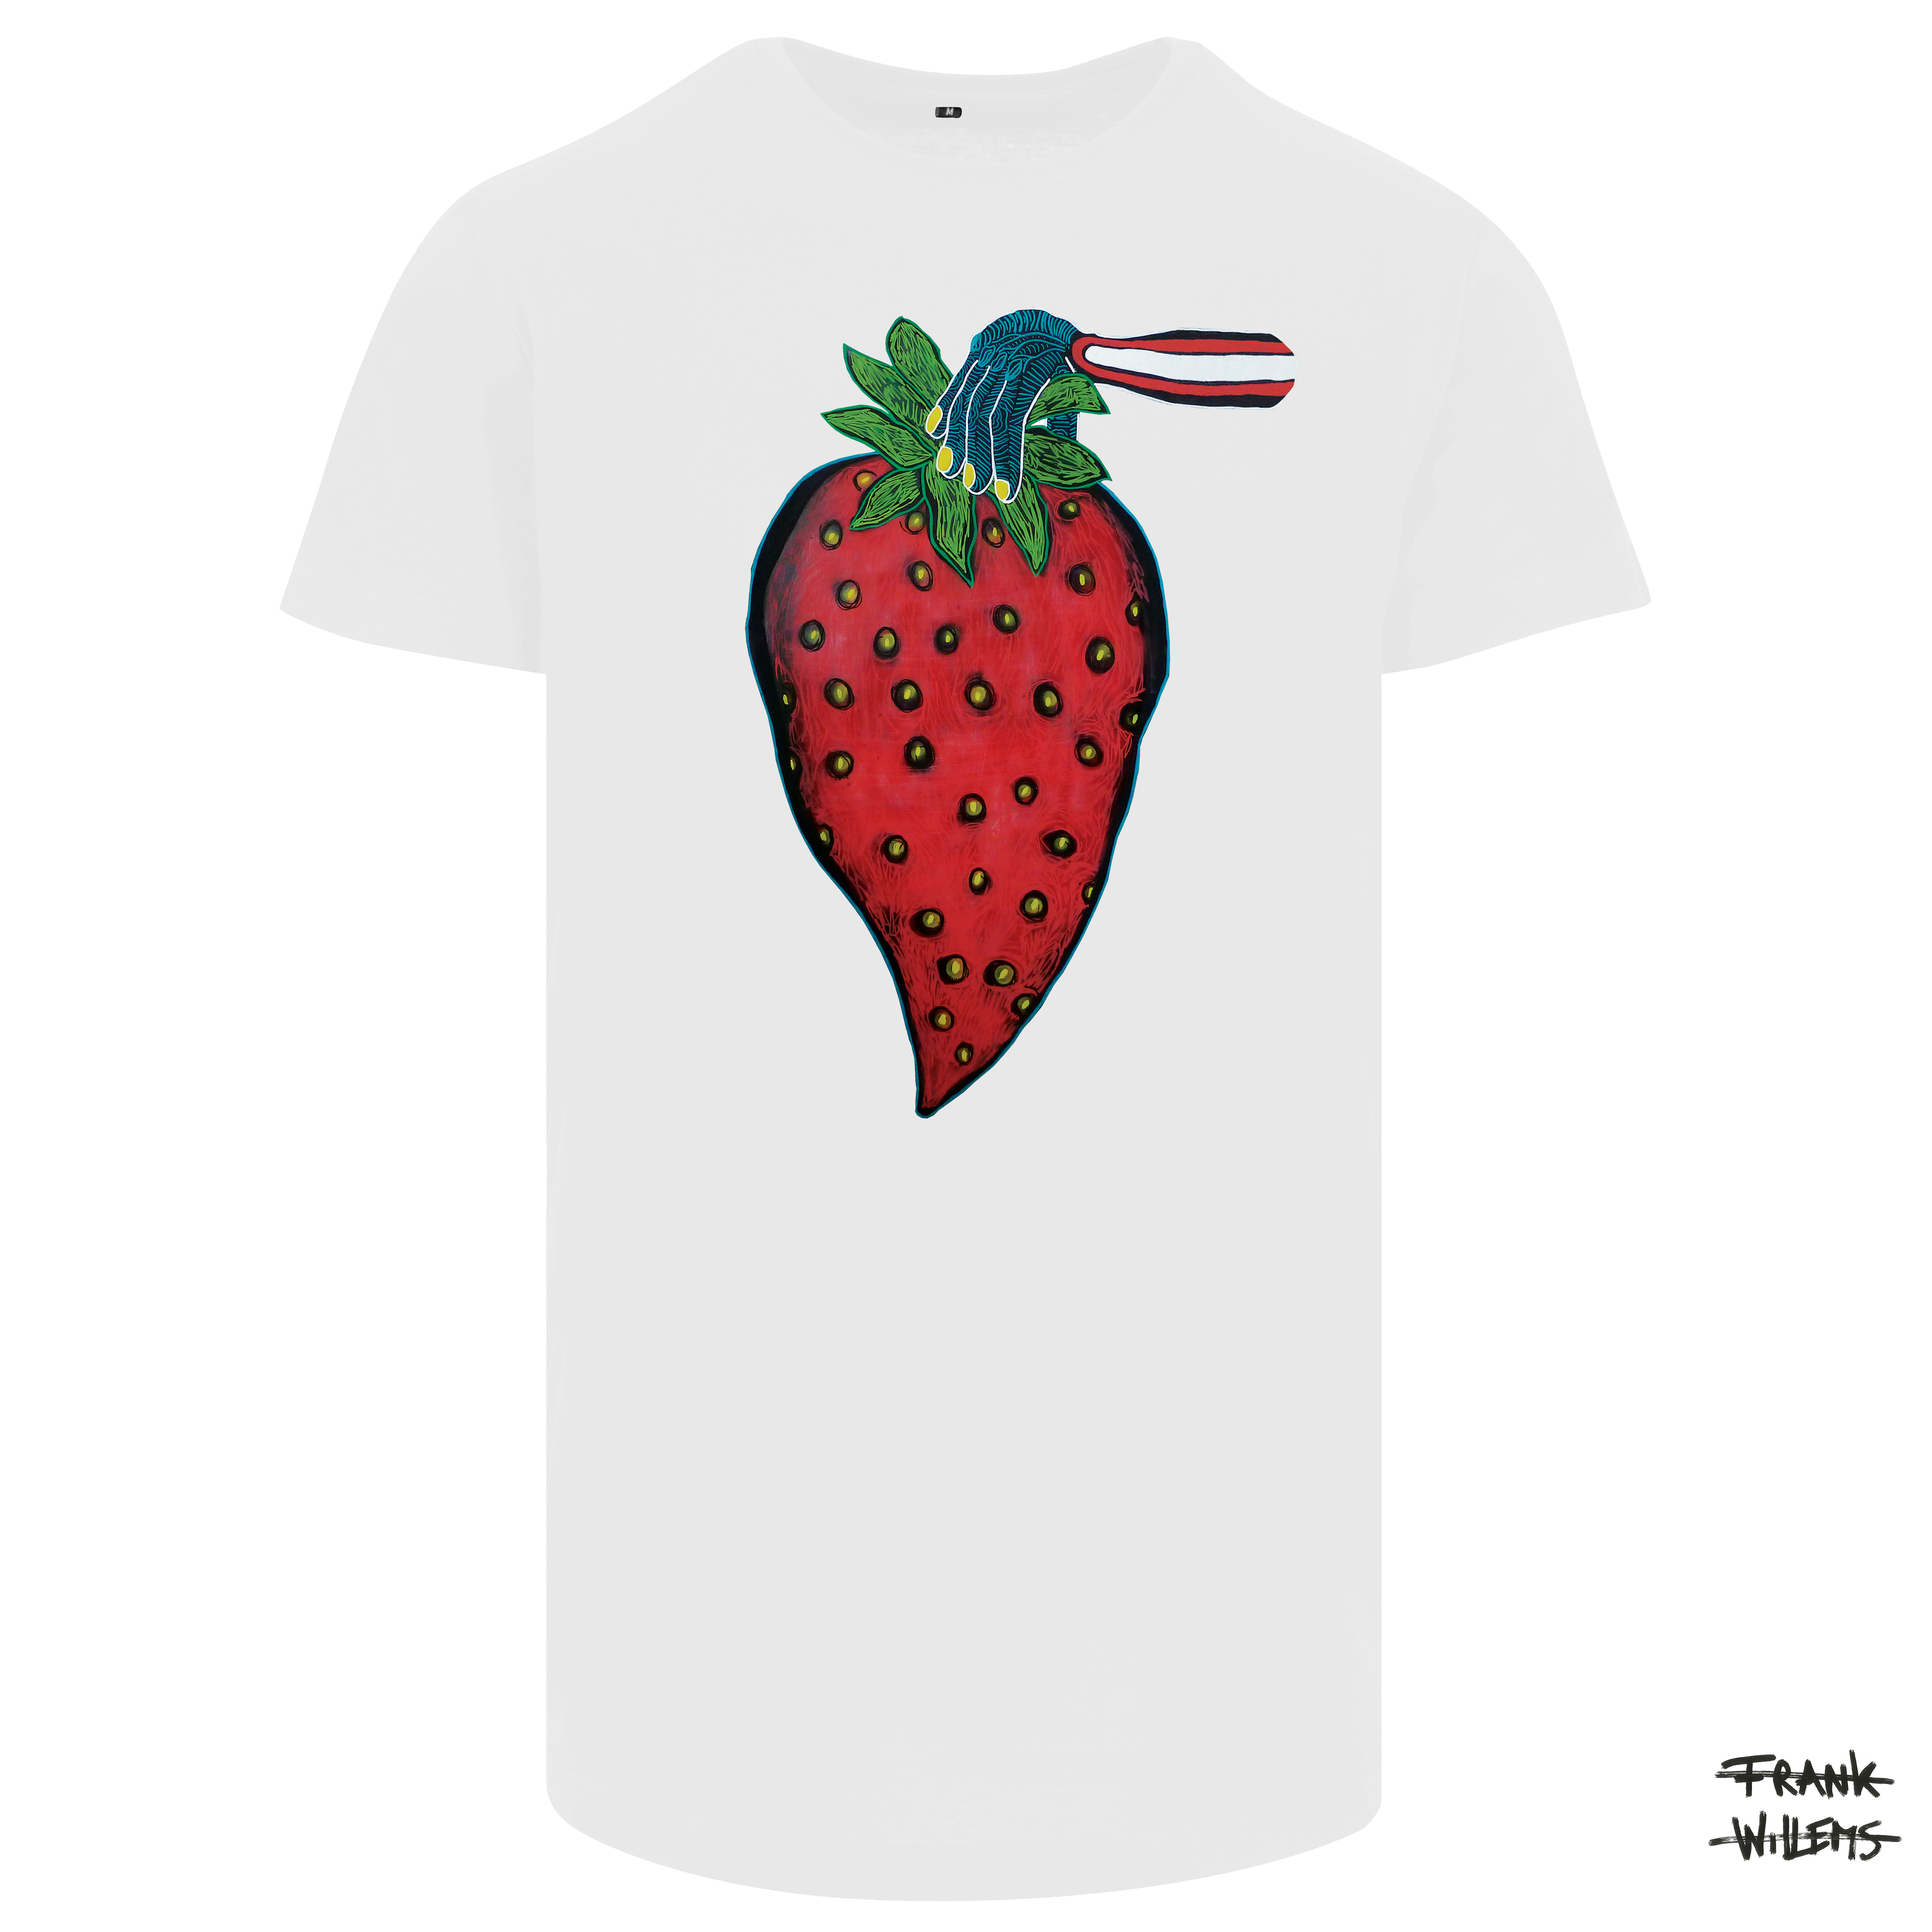 T-shirt YUMMY STRAWBERRY wht 17 - Frank Willems